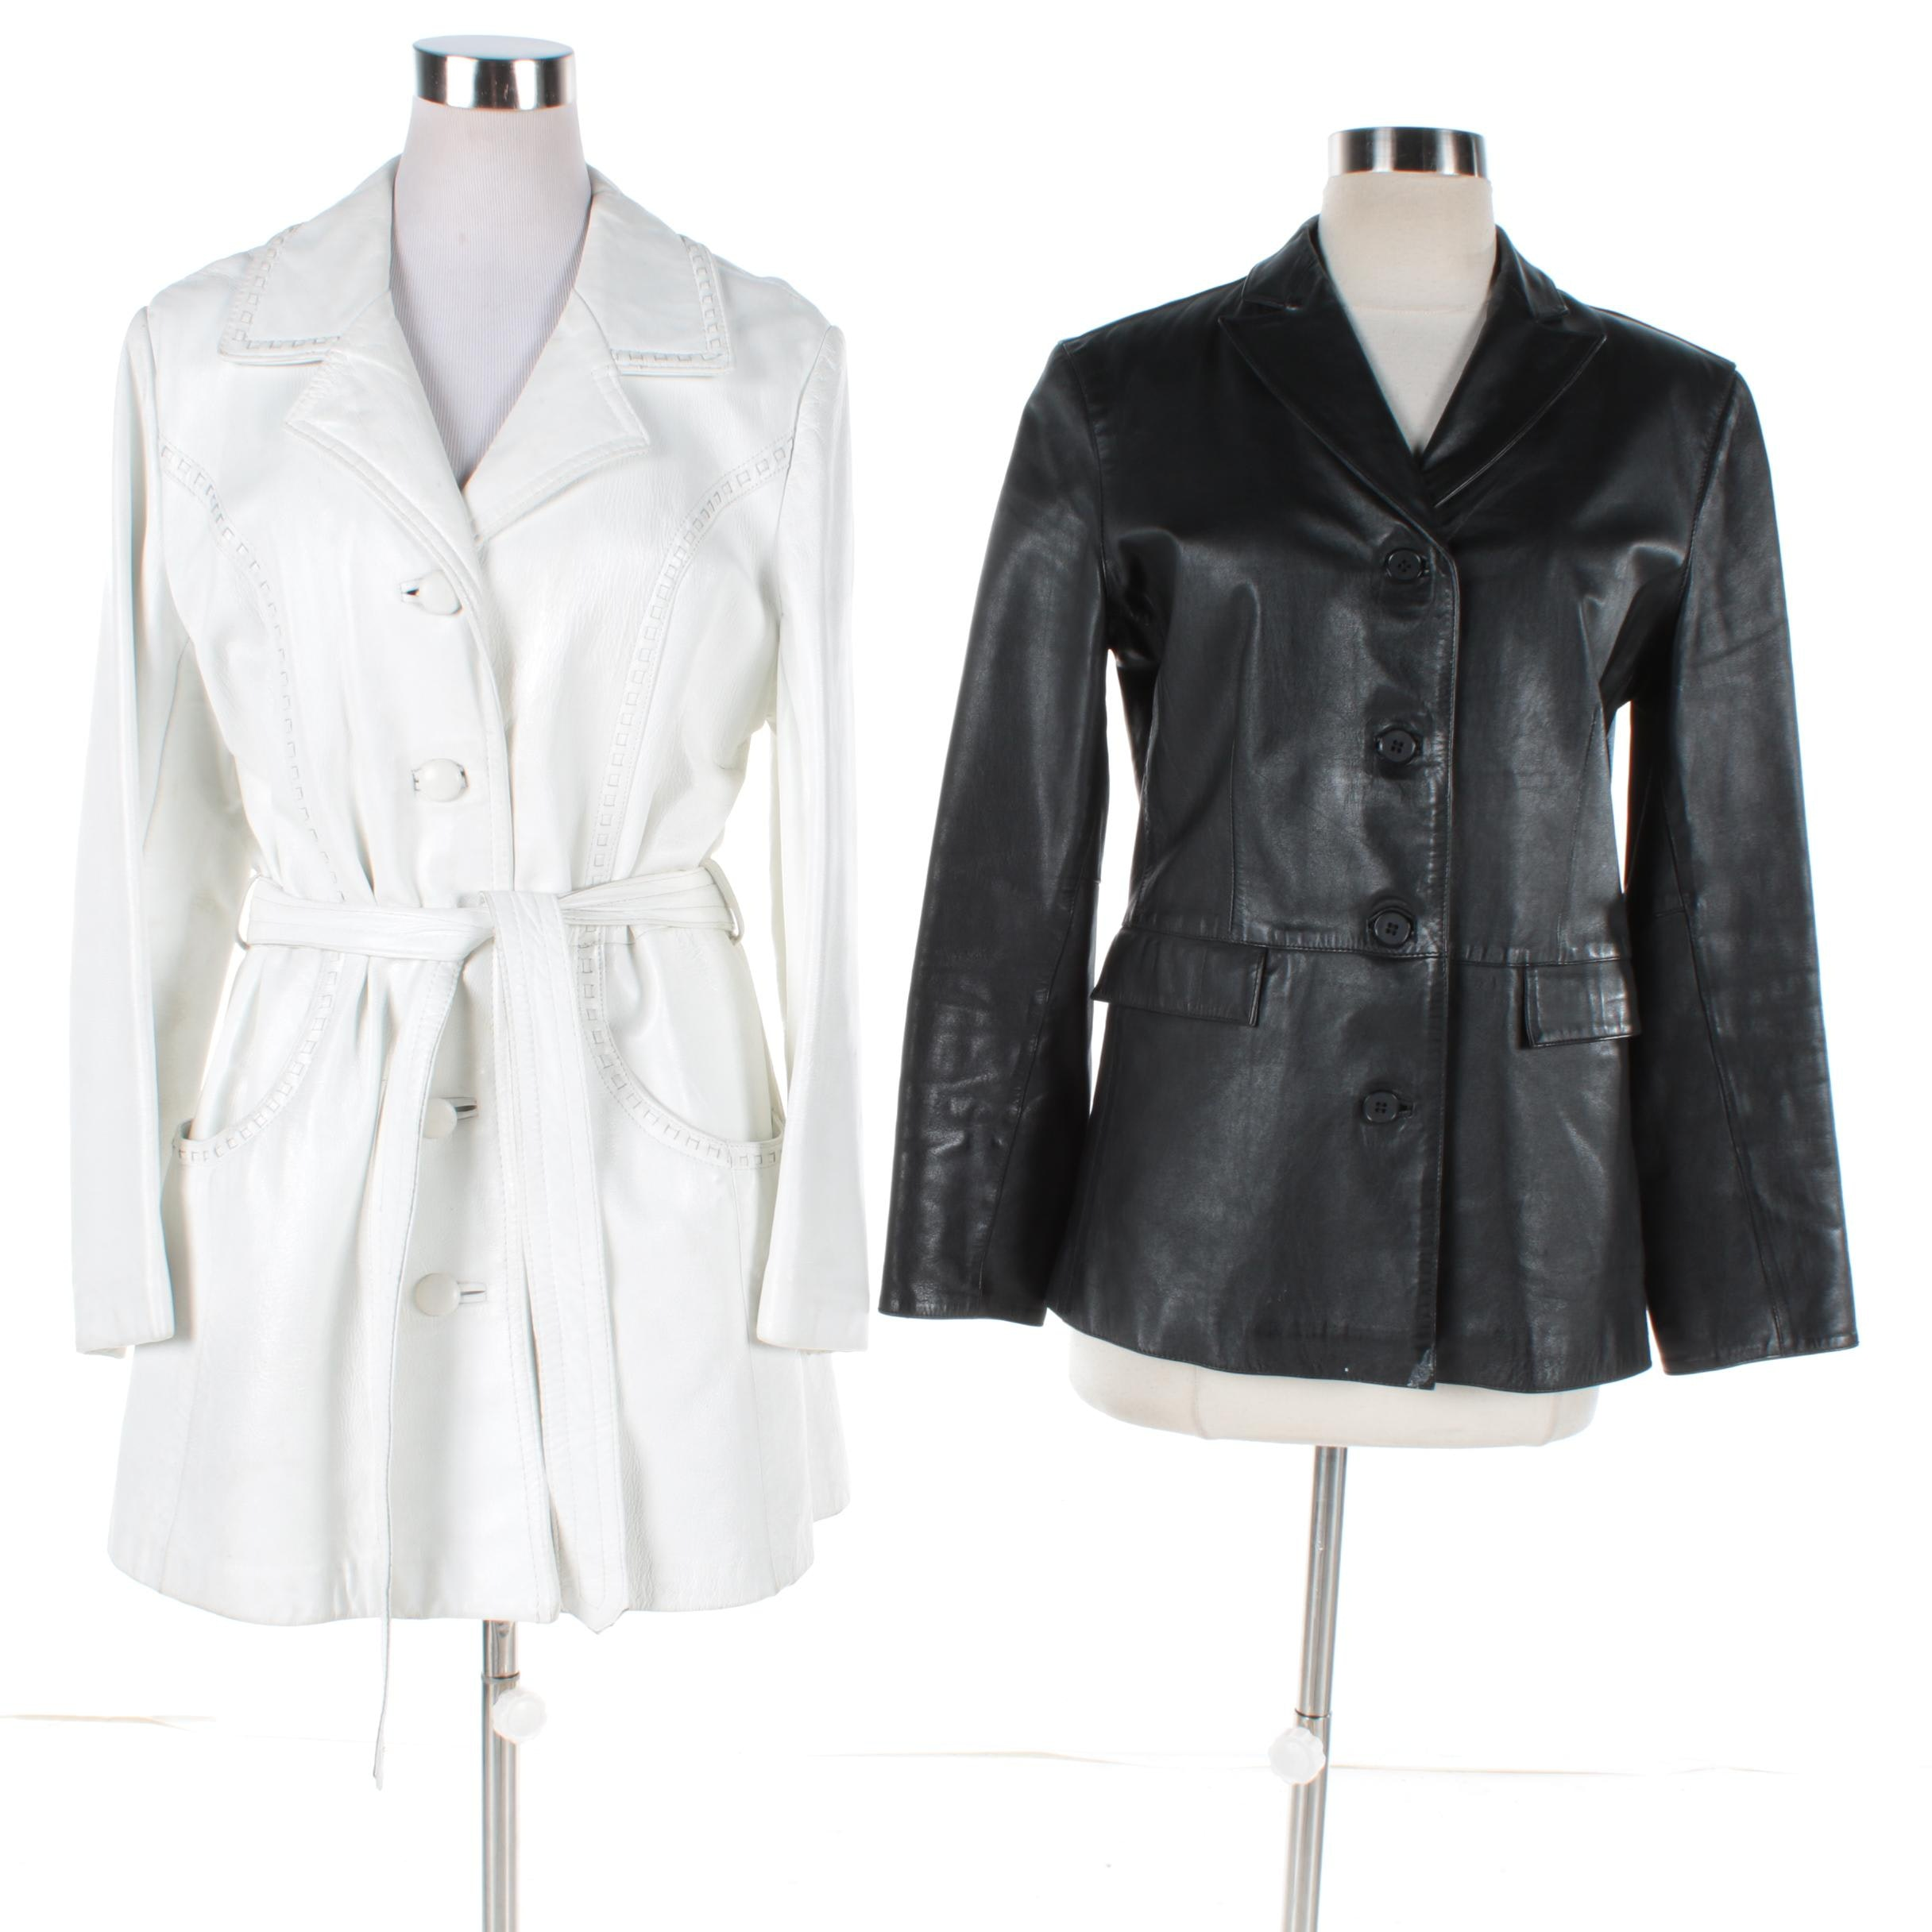 Women's Leather Jackets Including Gap and Dandi Modes